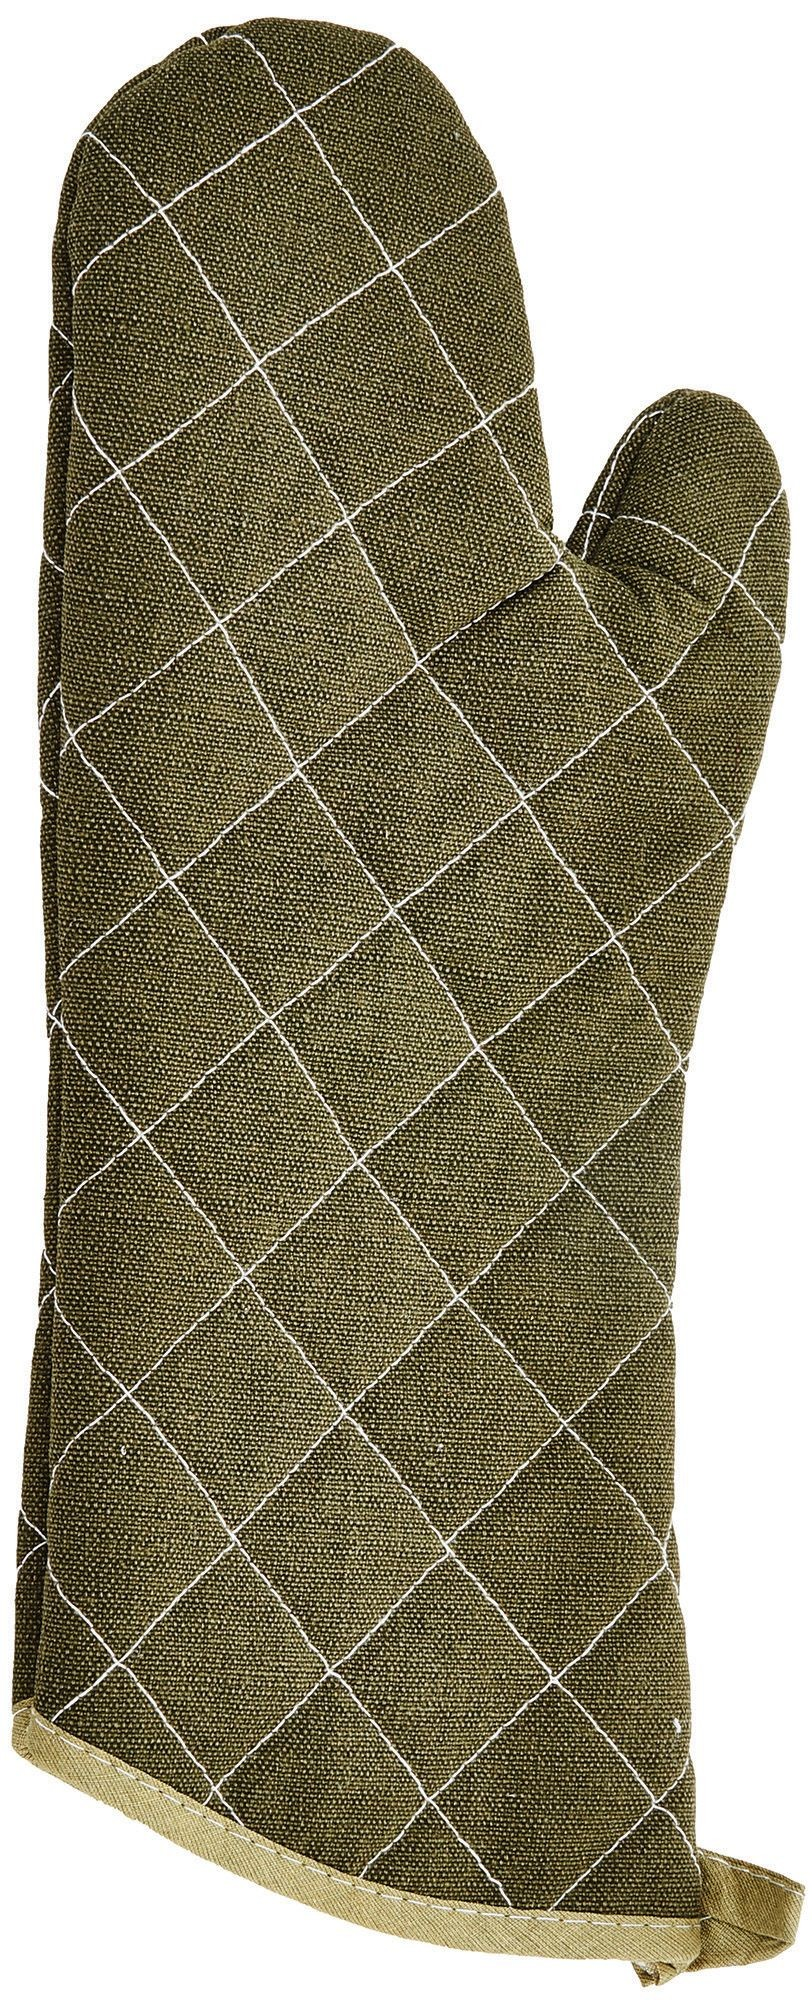 Winco OMF-15 Oven Mitt, Flame Resistant Up to 400° F 15""